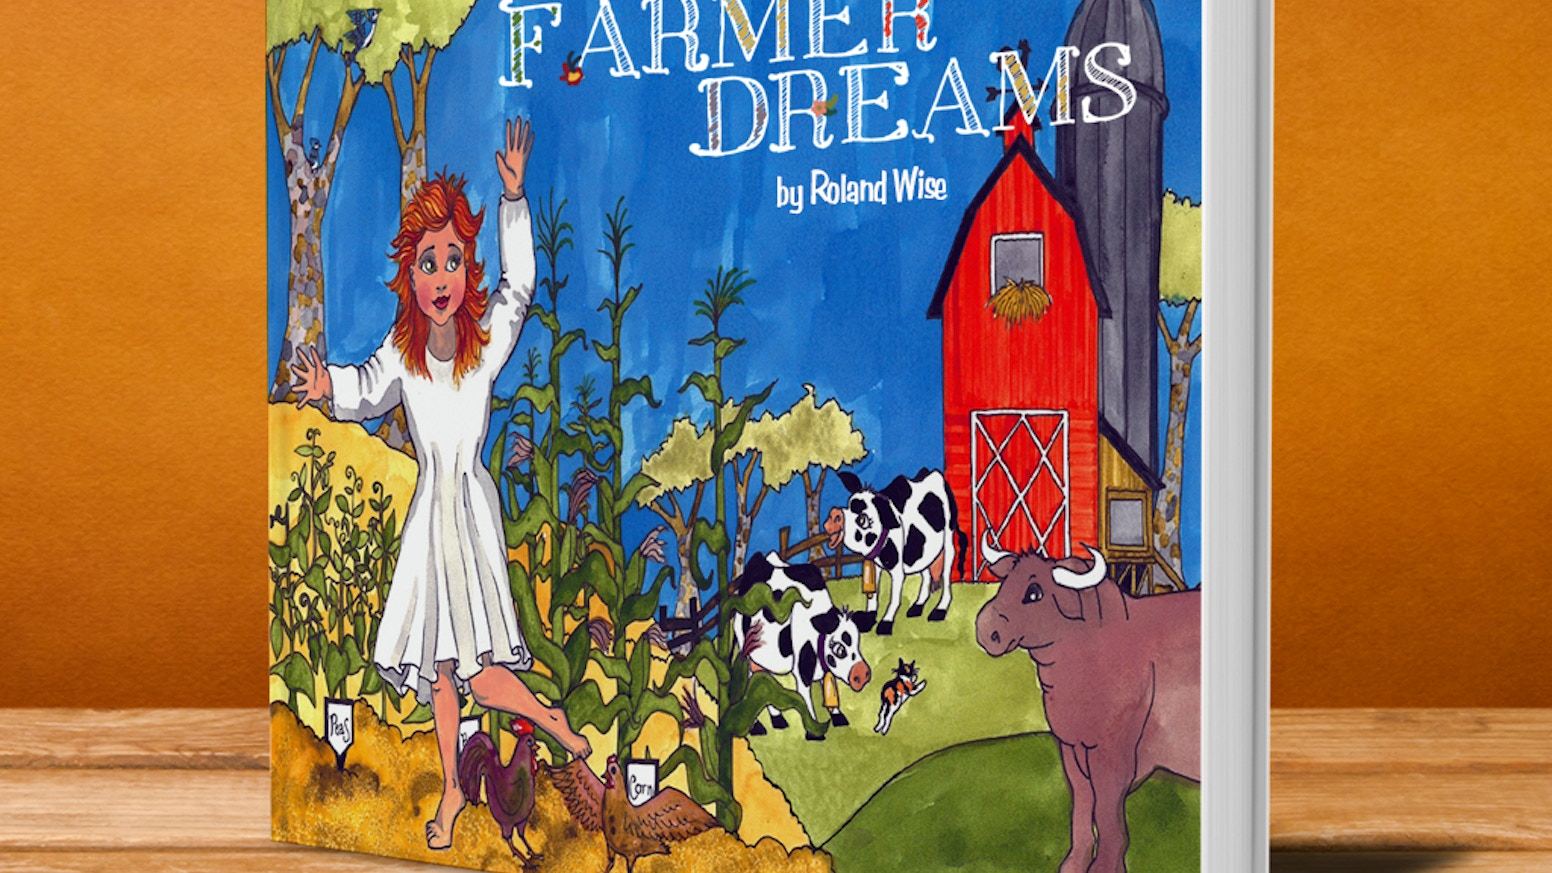 Farmer Dreams [a fully rhyming children's picture book] by